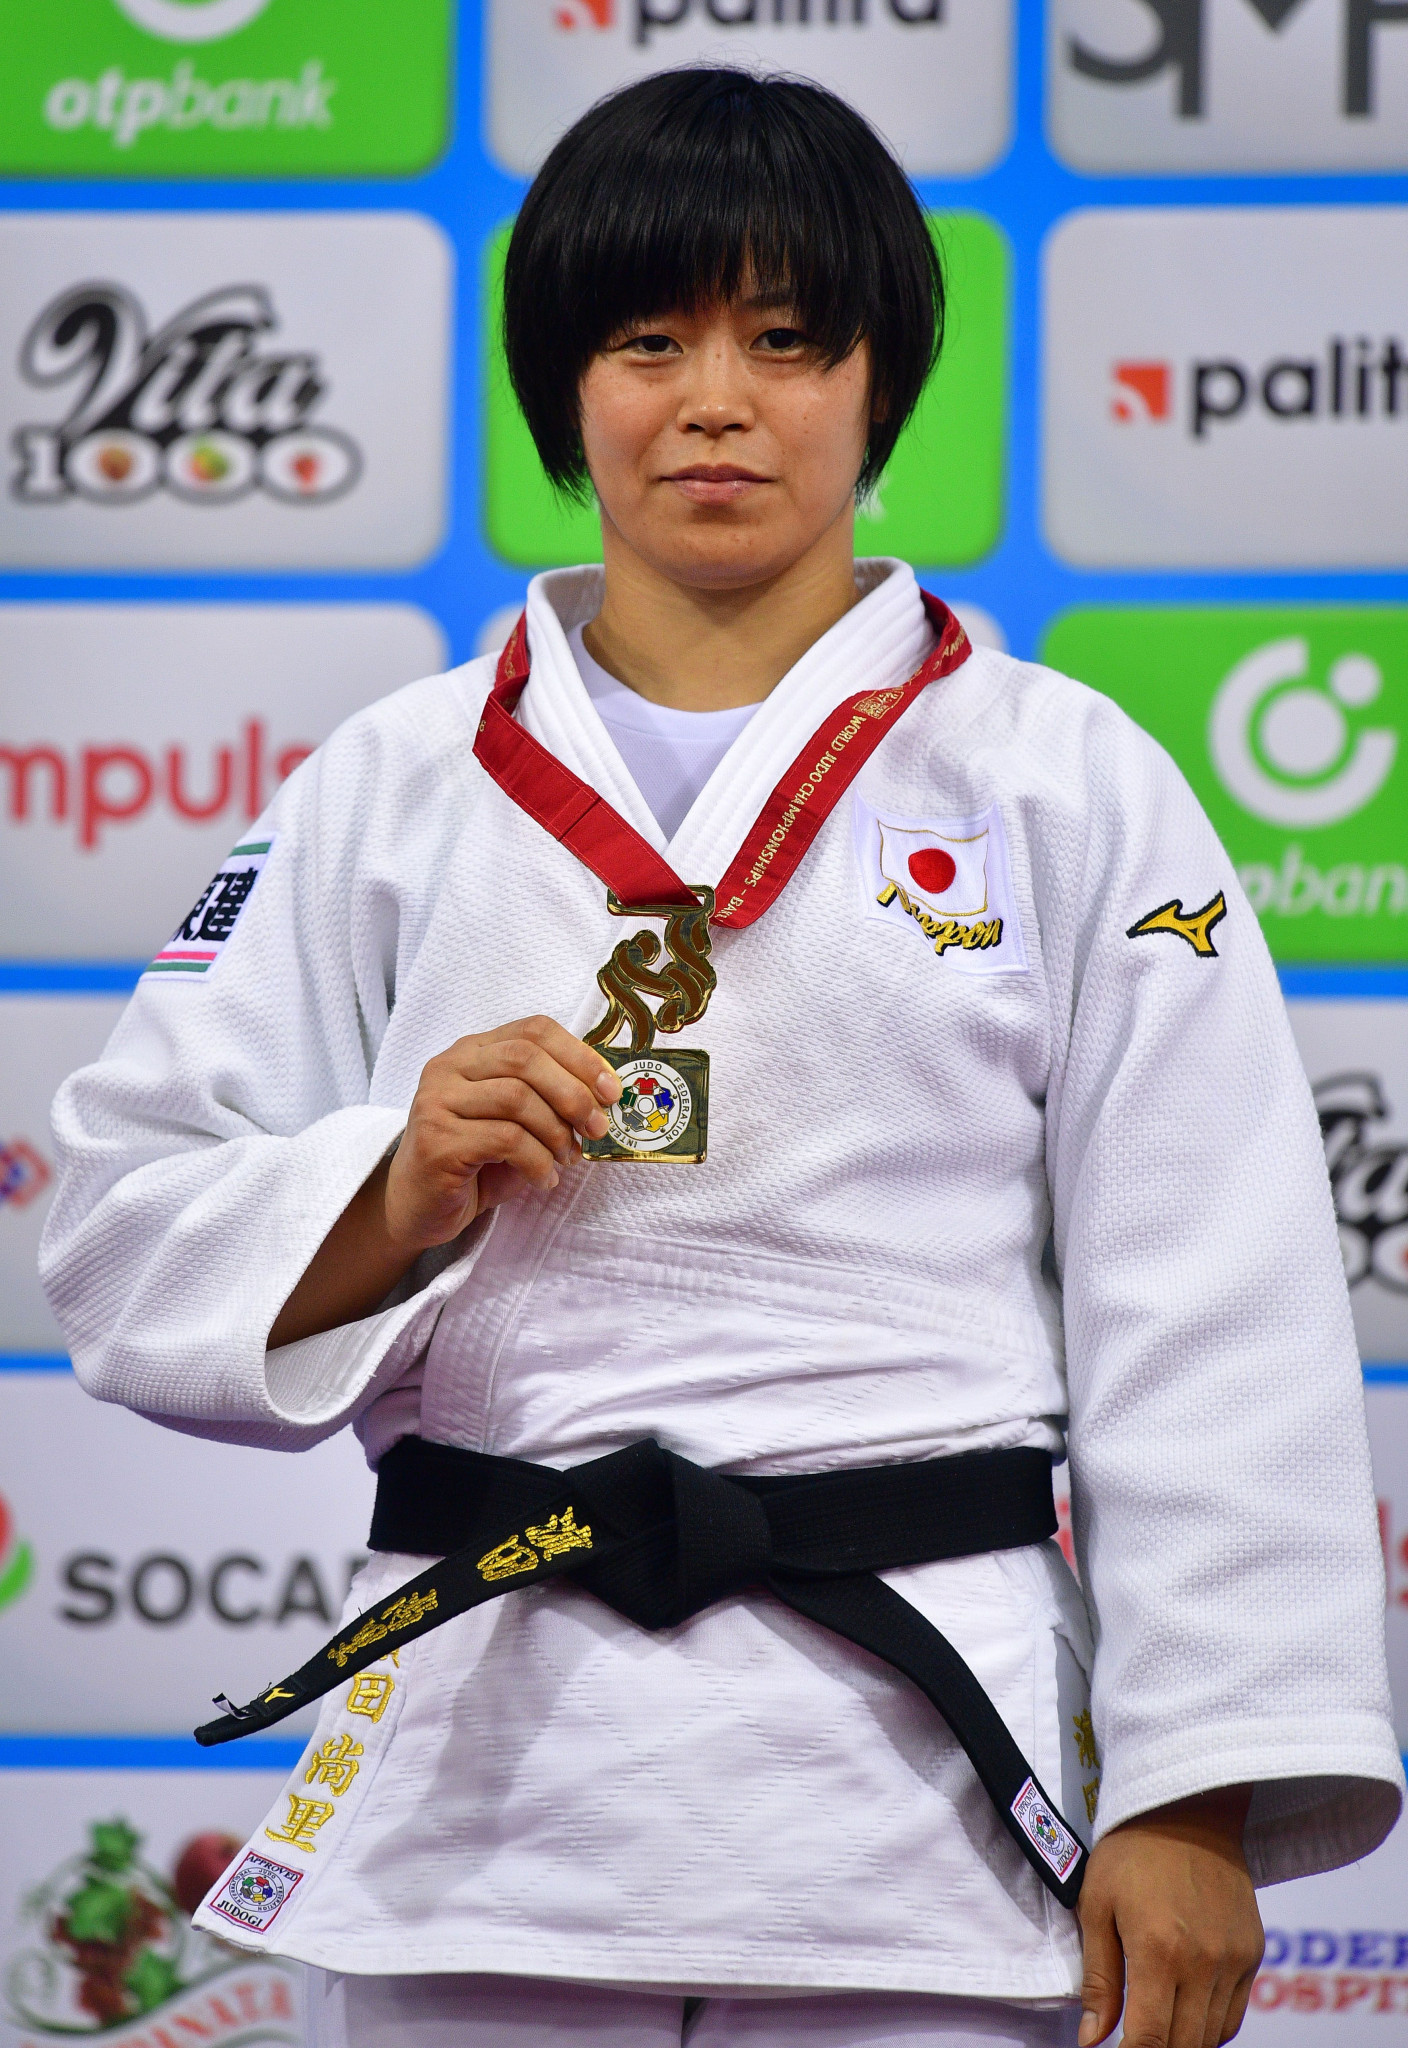 Japan's Shori Hamada wins gold at her first World Championships Six golds on day six for Japan at World Judo Championships ©Getty Images